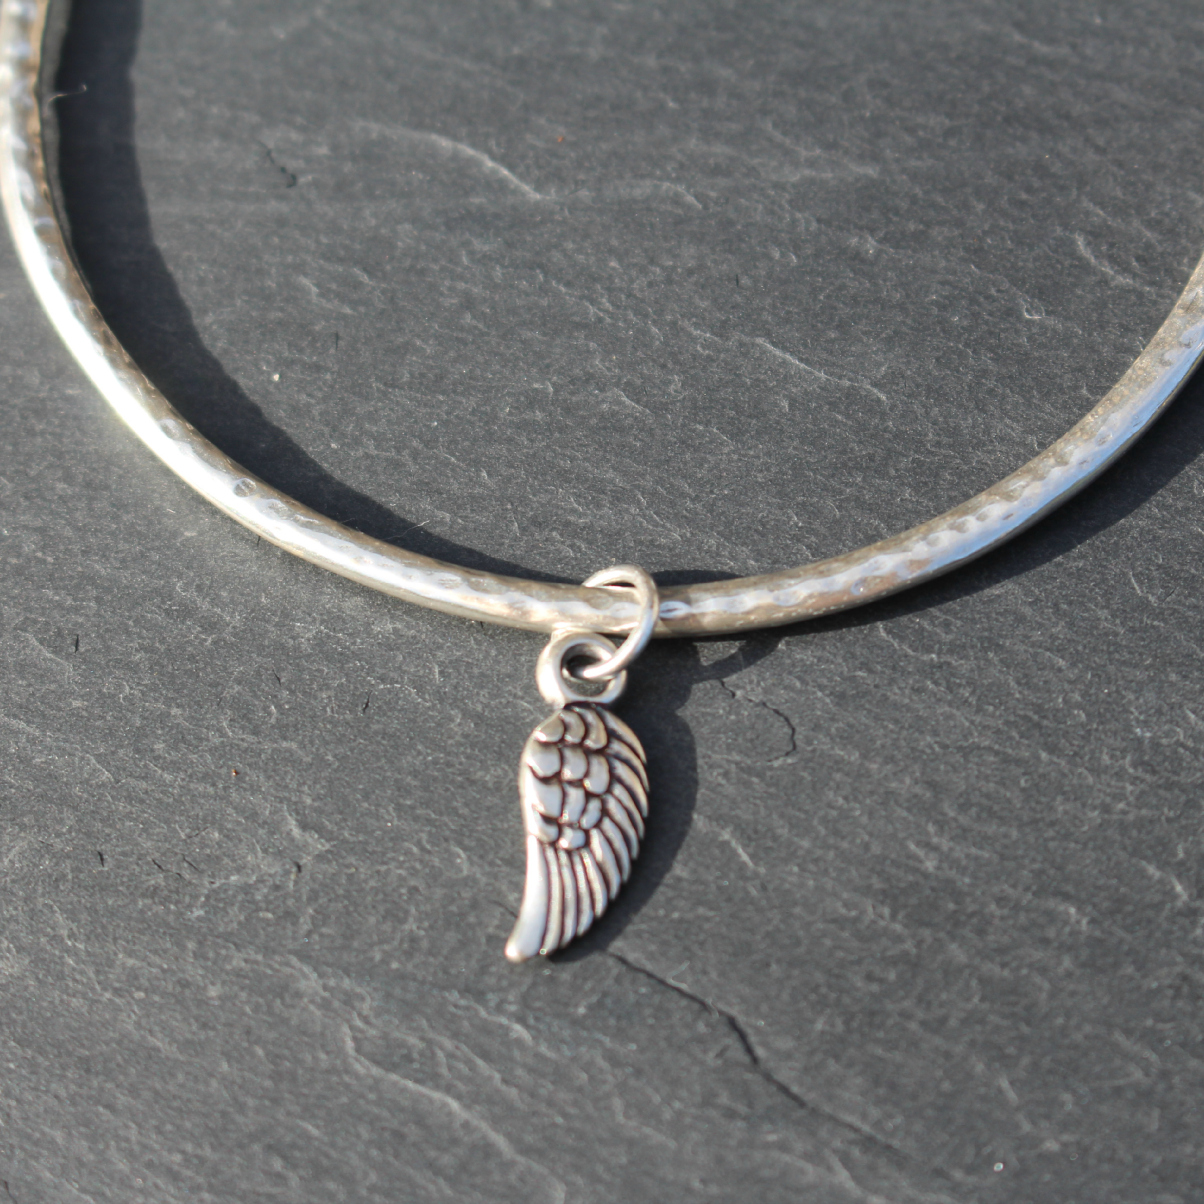 Danon Jewellery Silver Bangle with Tiny Delicate silver mini micro angel wing charm available at Birdhouse Jewellery www.birdhousejewellery.com Copyright www.birdhousejewellery.com